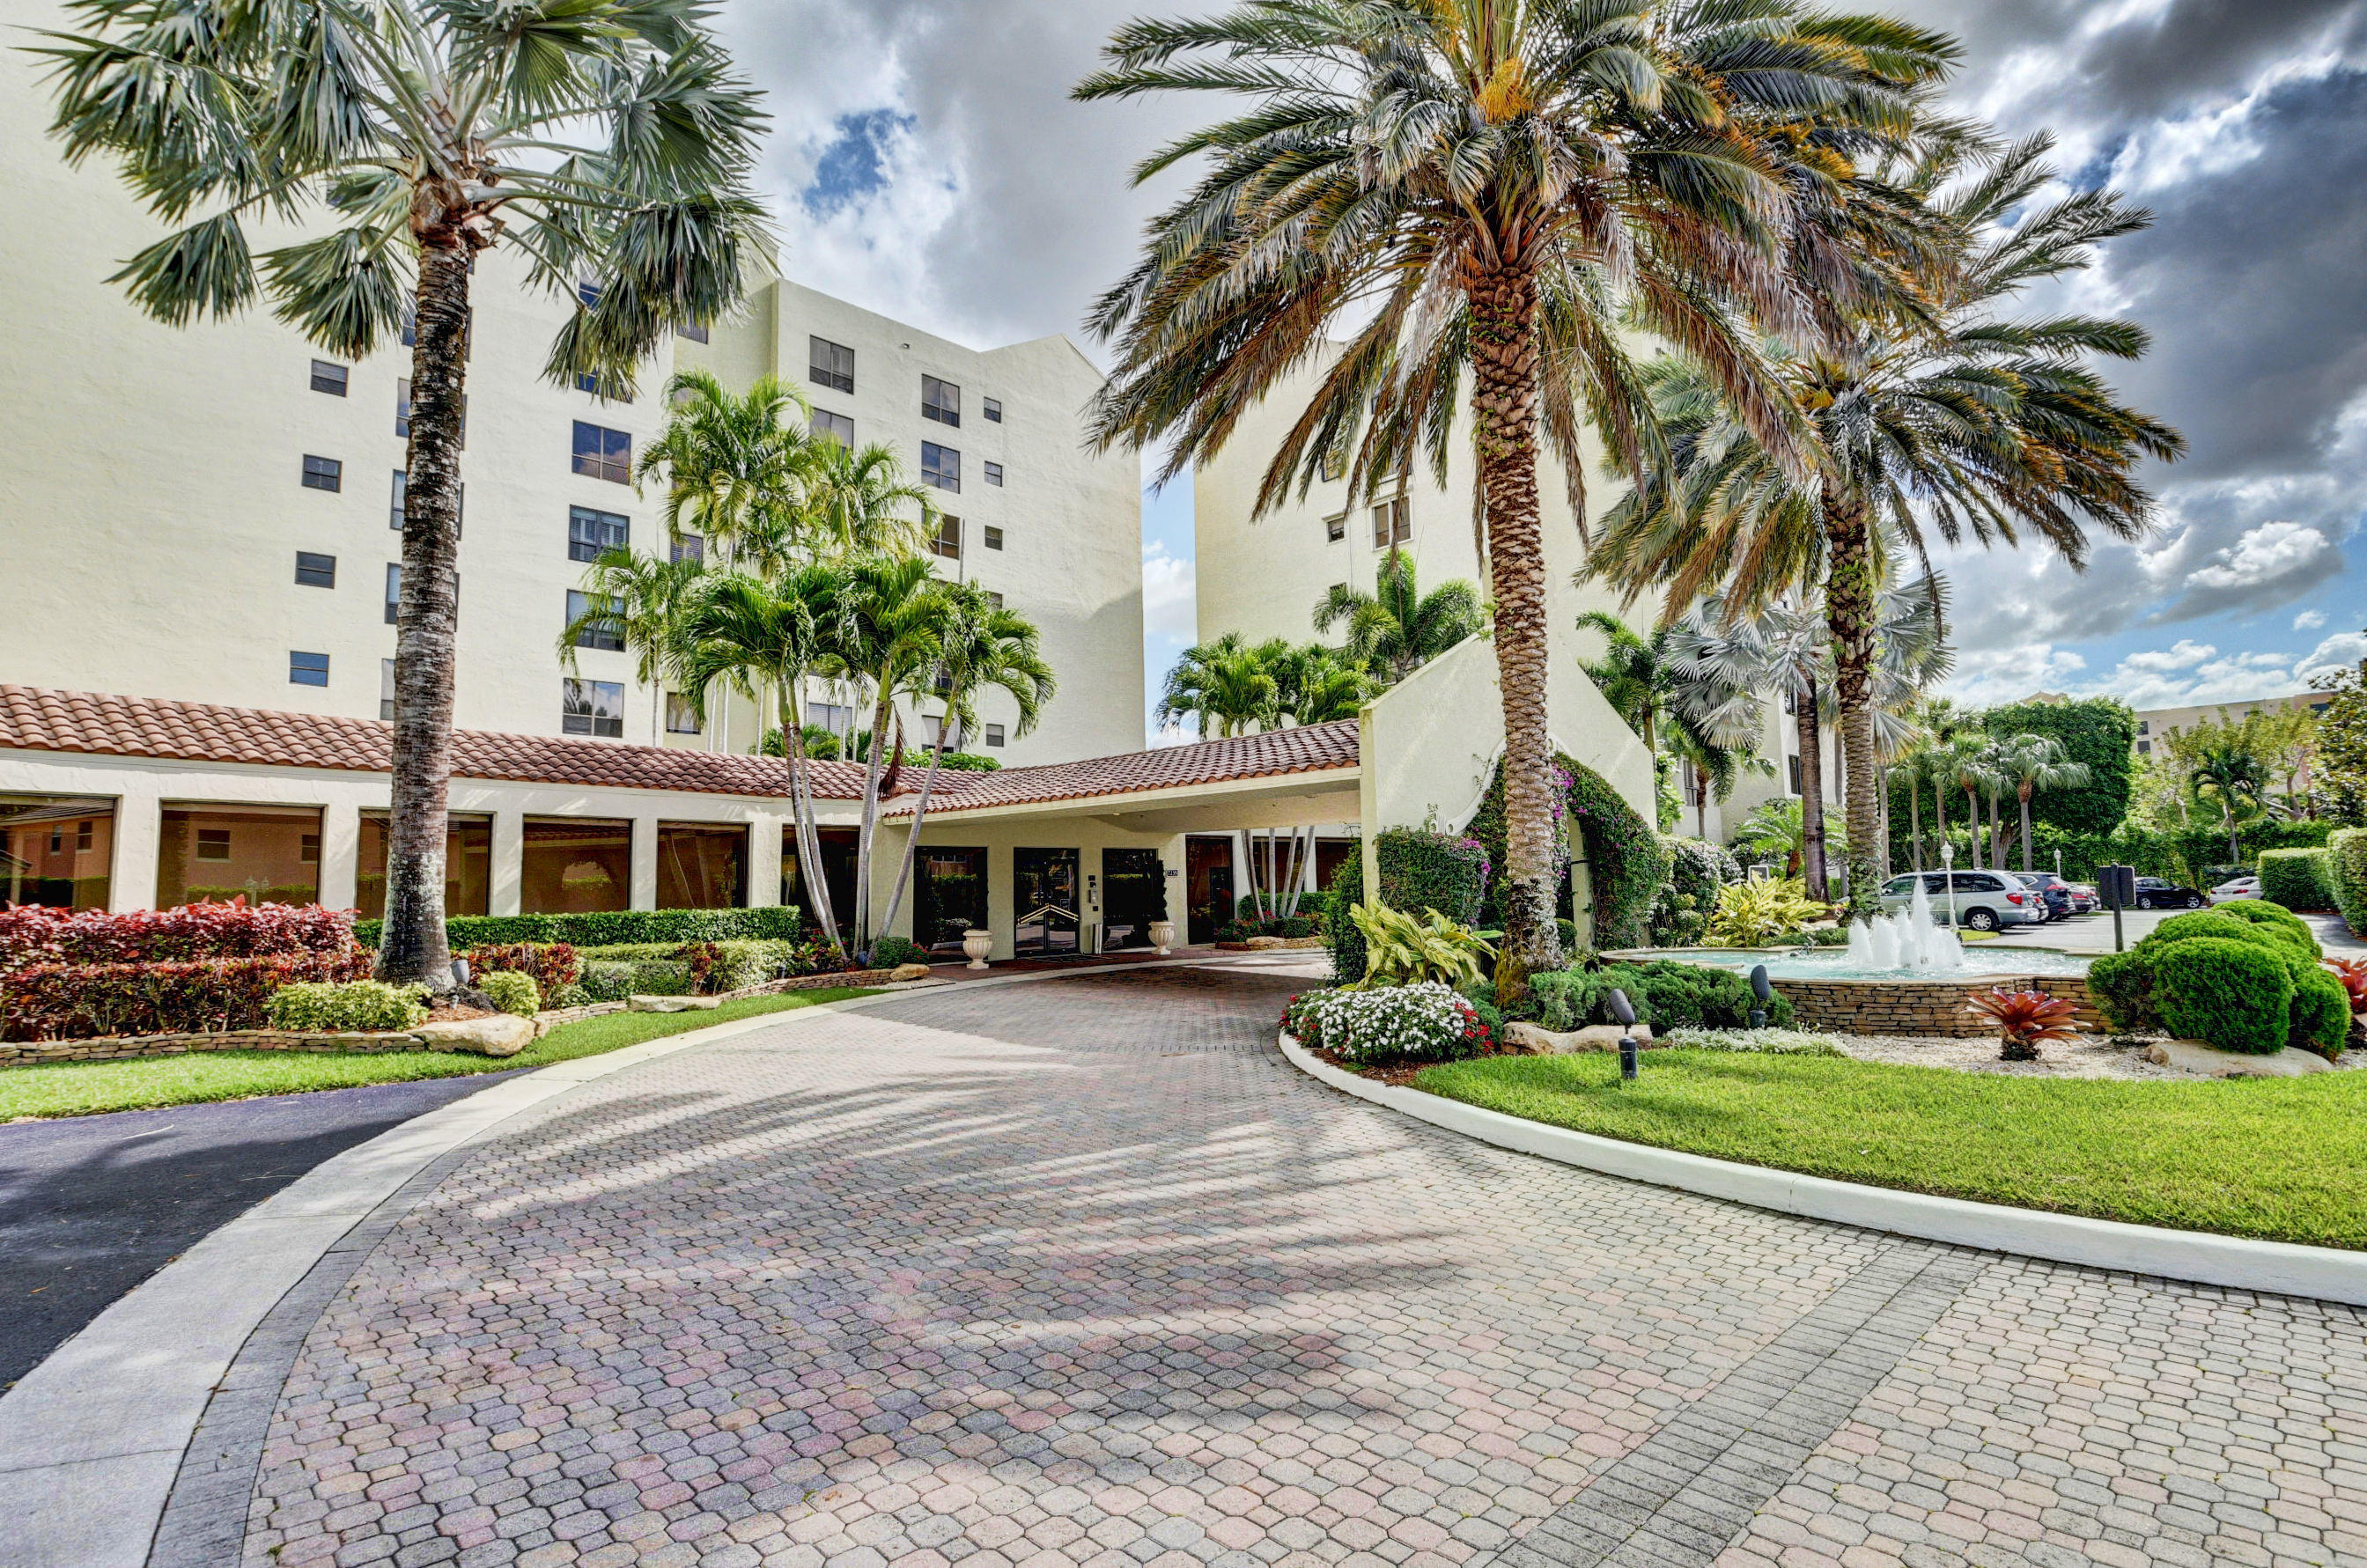 Photo of 7235 Promenade Drive #302, Boca Raton, FL 33433